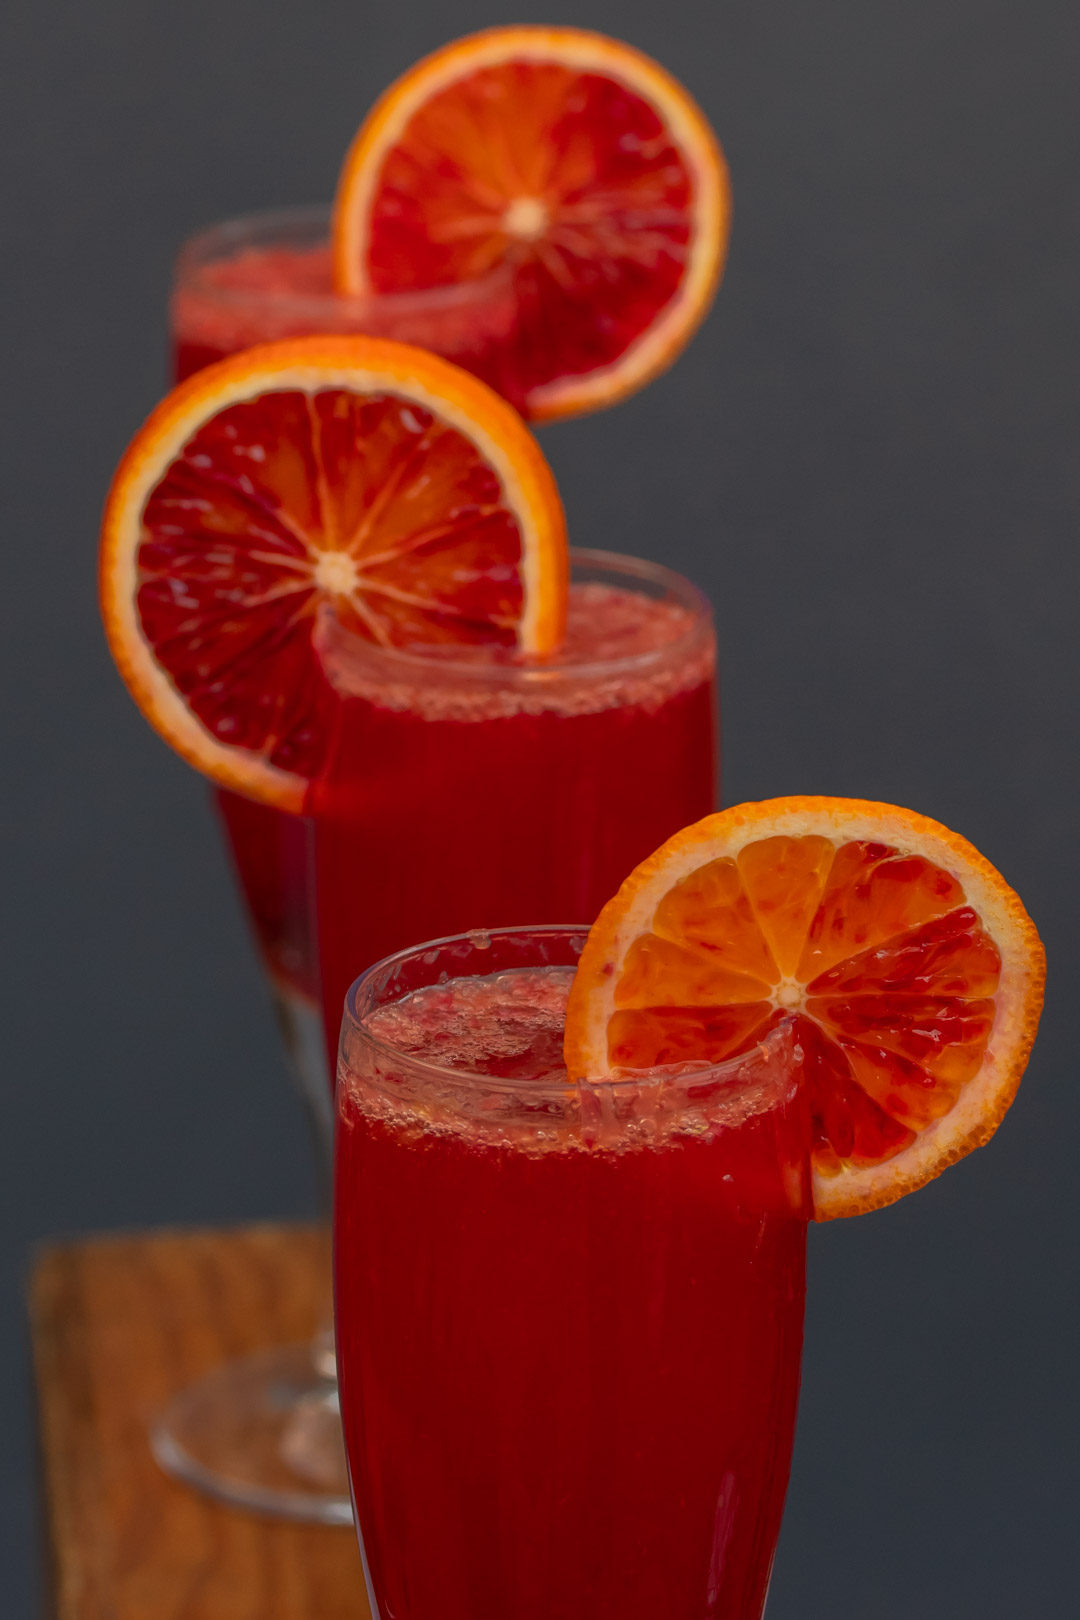 pickled cherry blood orange prosecco from above